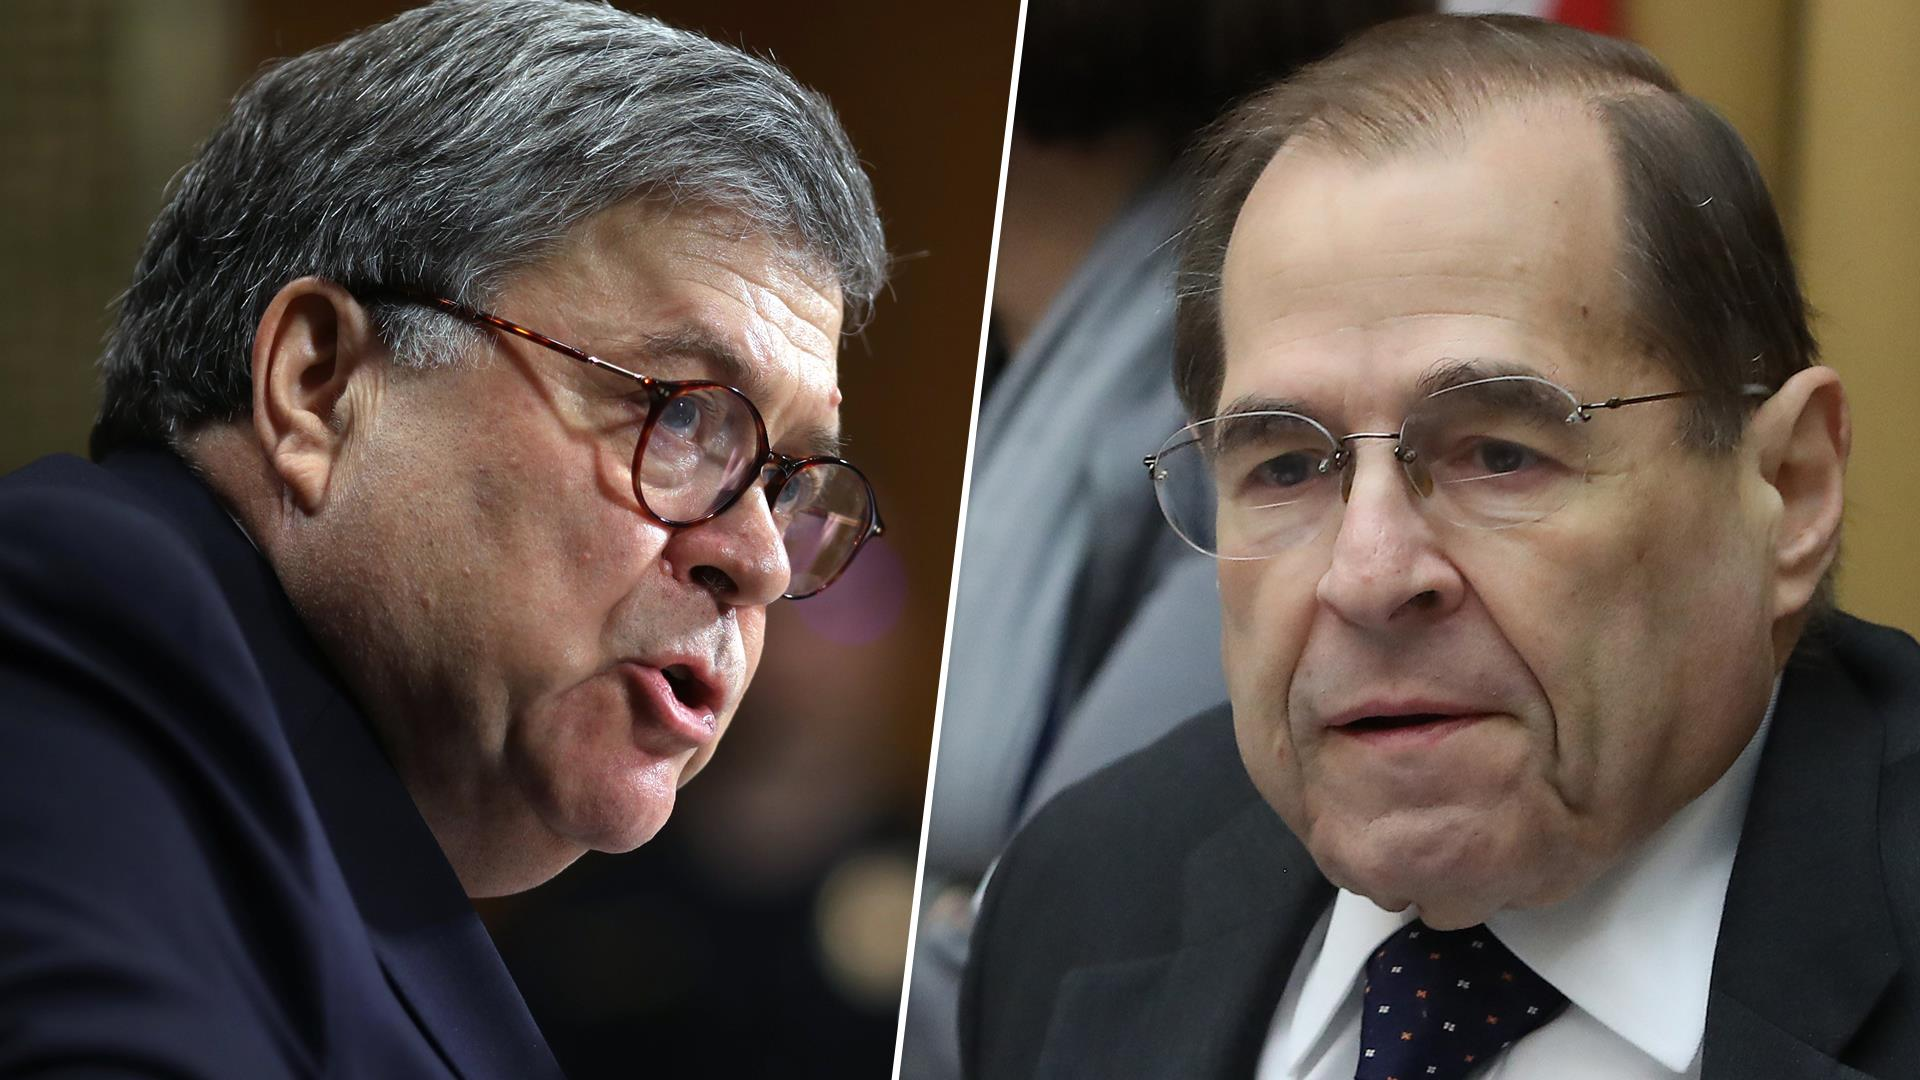 What to expect as Nadler moves to hold Barr in contempt of Congress